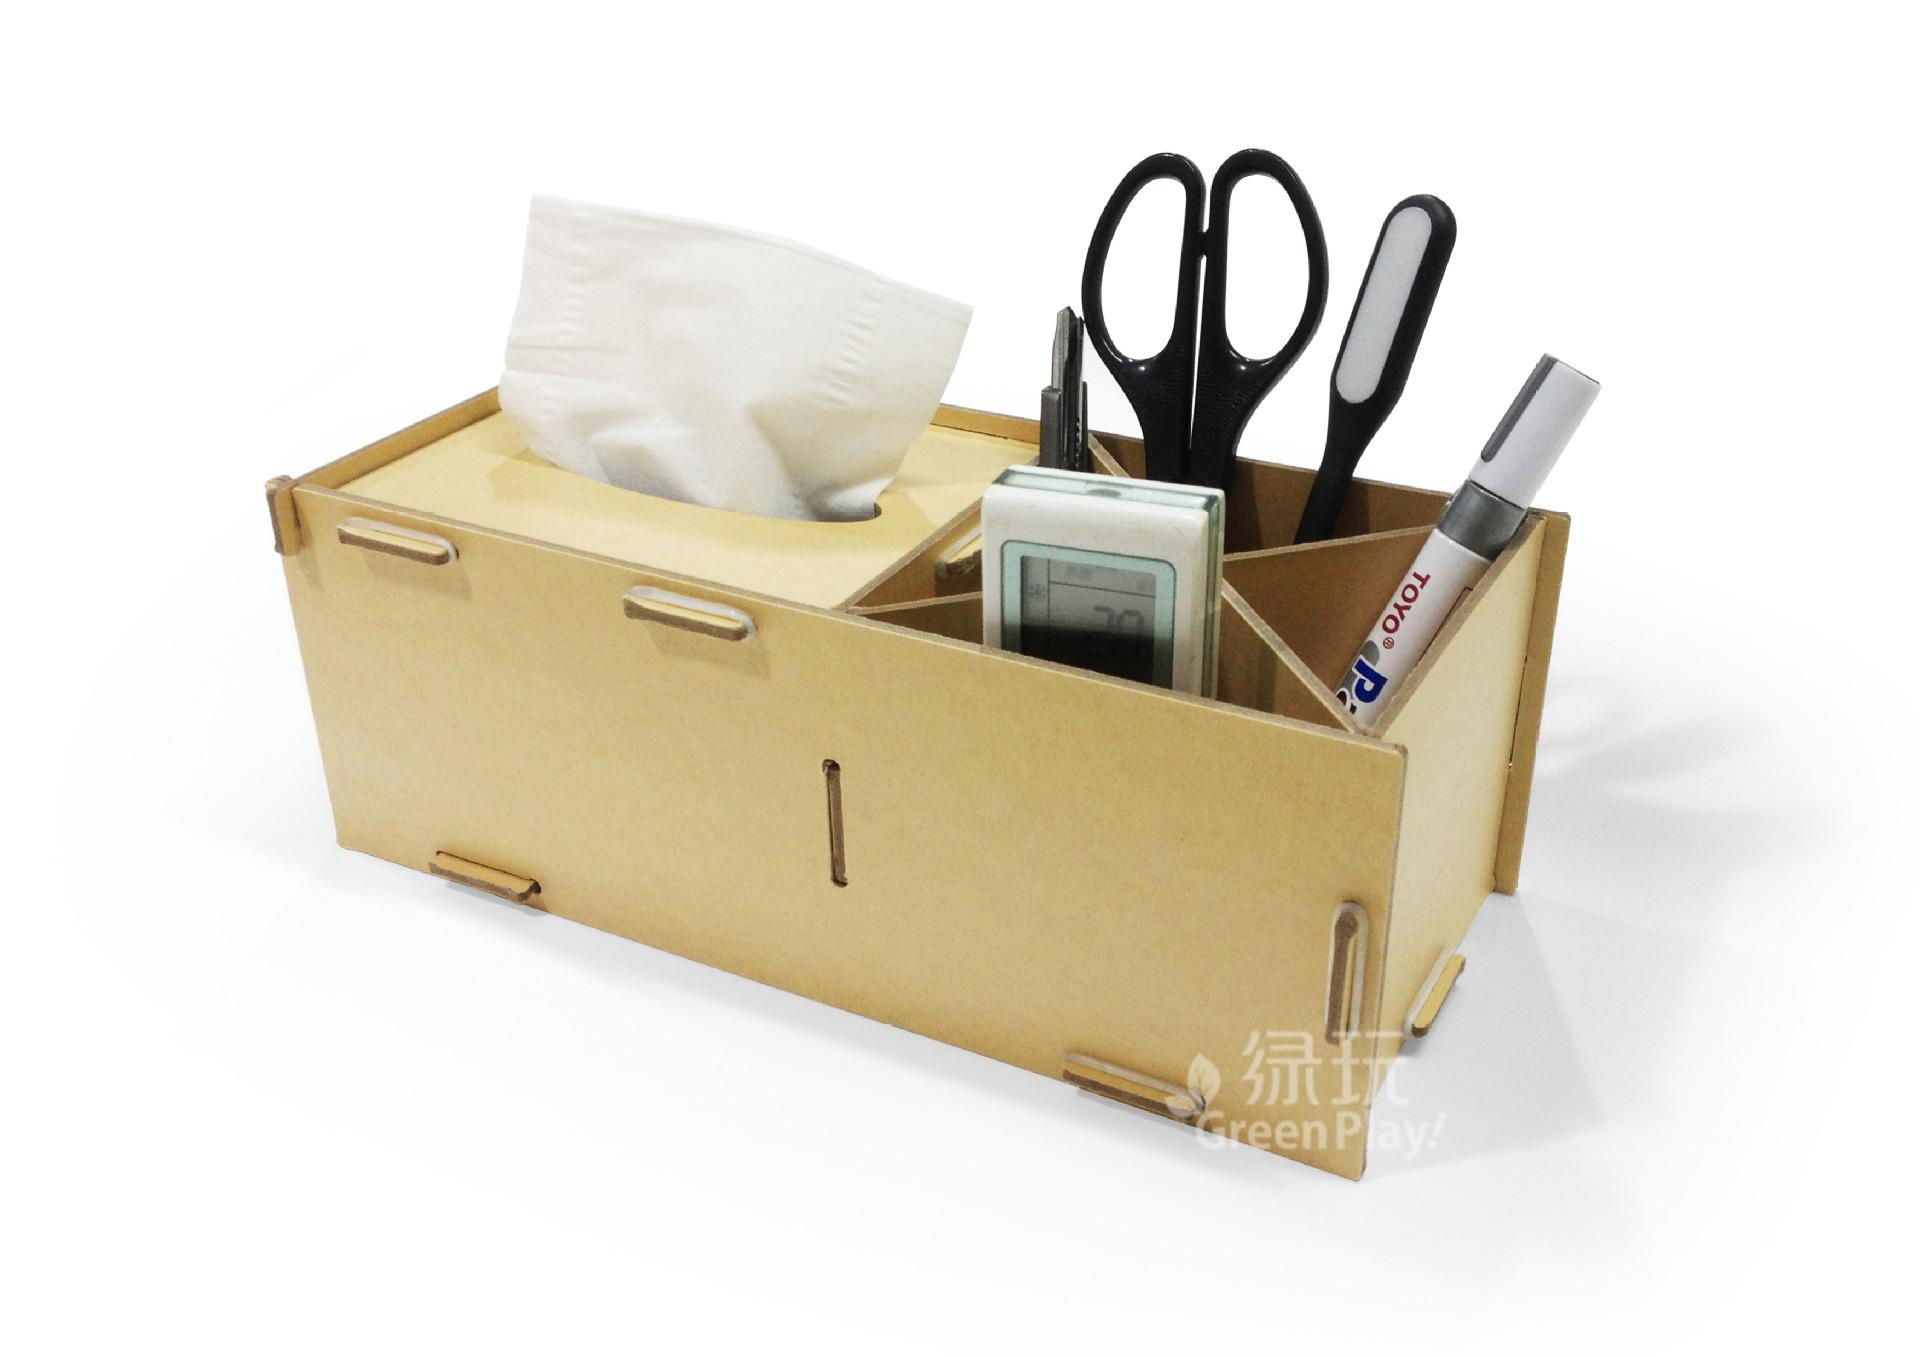 2018 Kraft Paper Desk Organizer With Tissue Bo Office Accessories And Drawer Make Your On The Room An Impression From Meirose